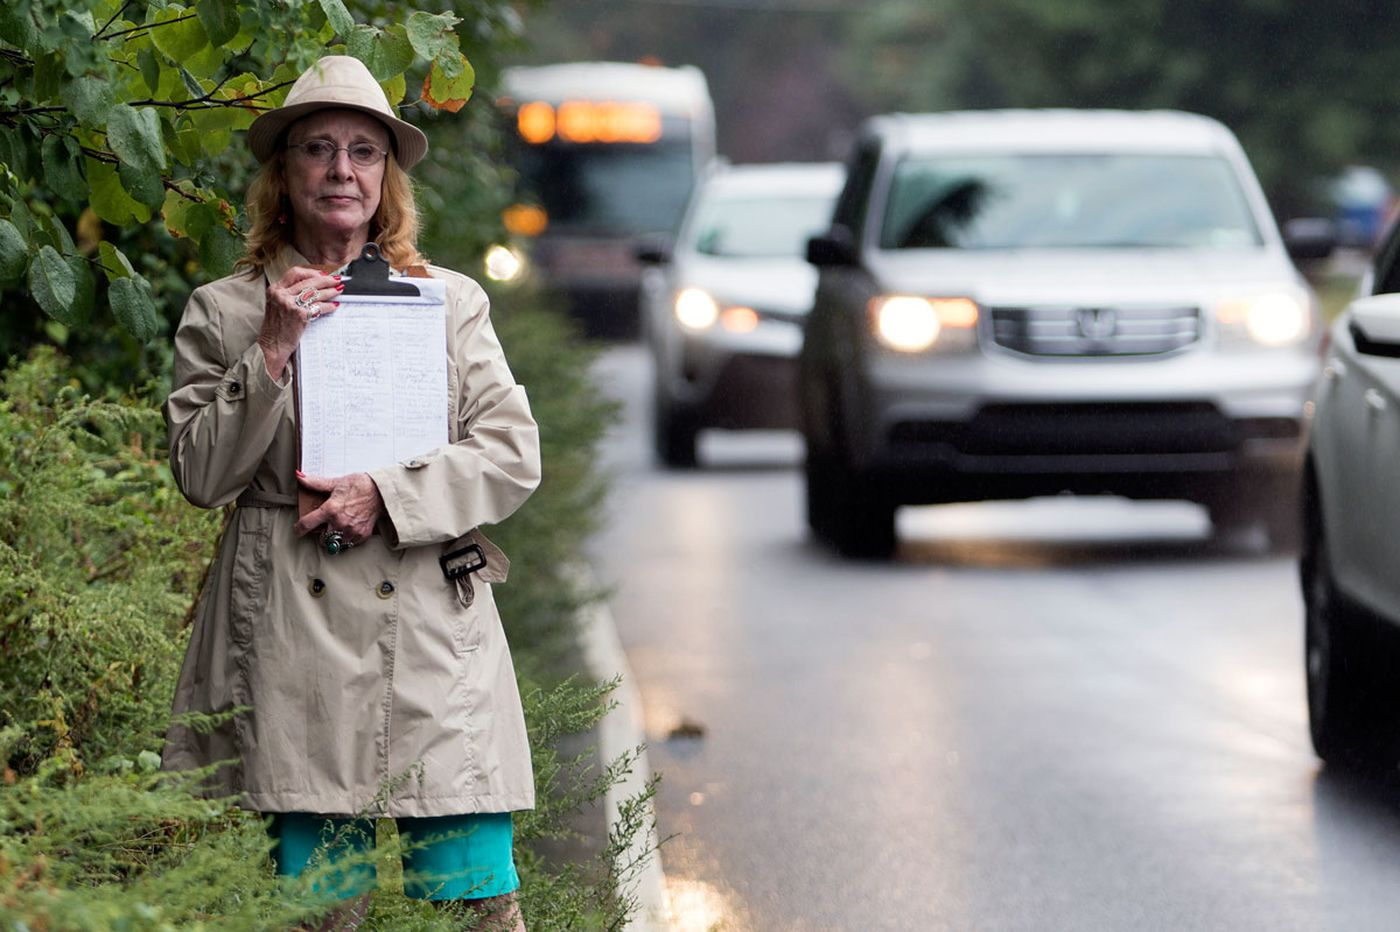 Dangerous curves: On Oxford Avenue, the absence of sidewalks put pedestrians at risk